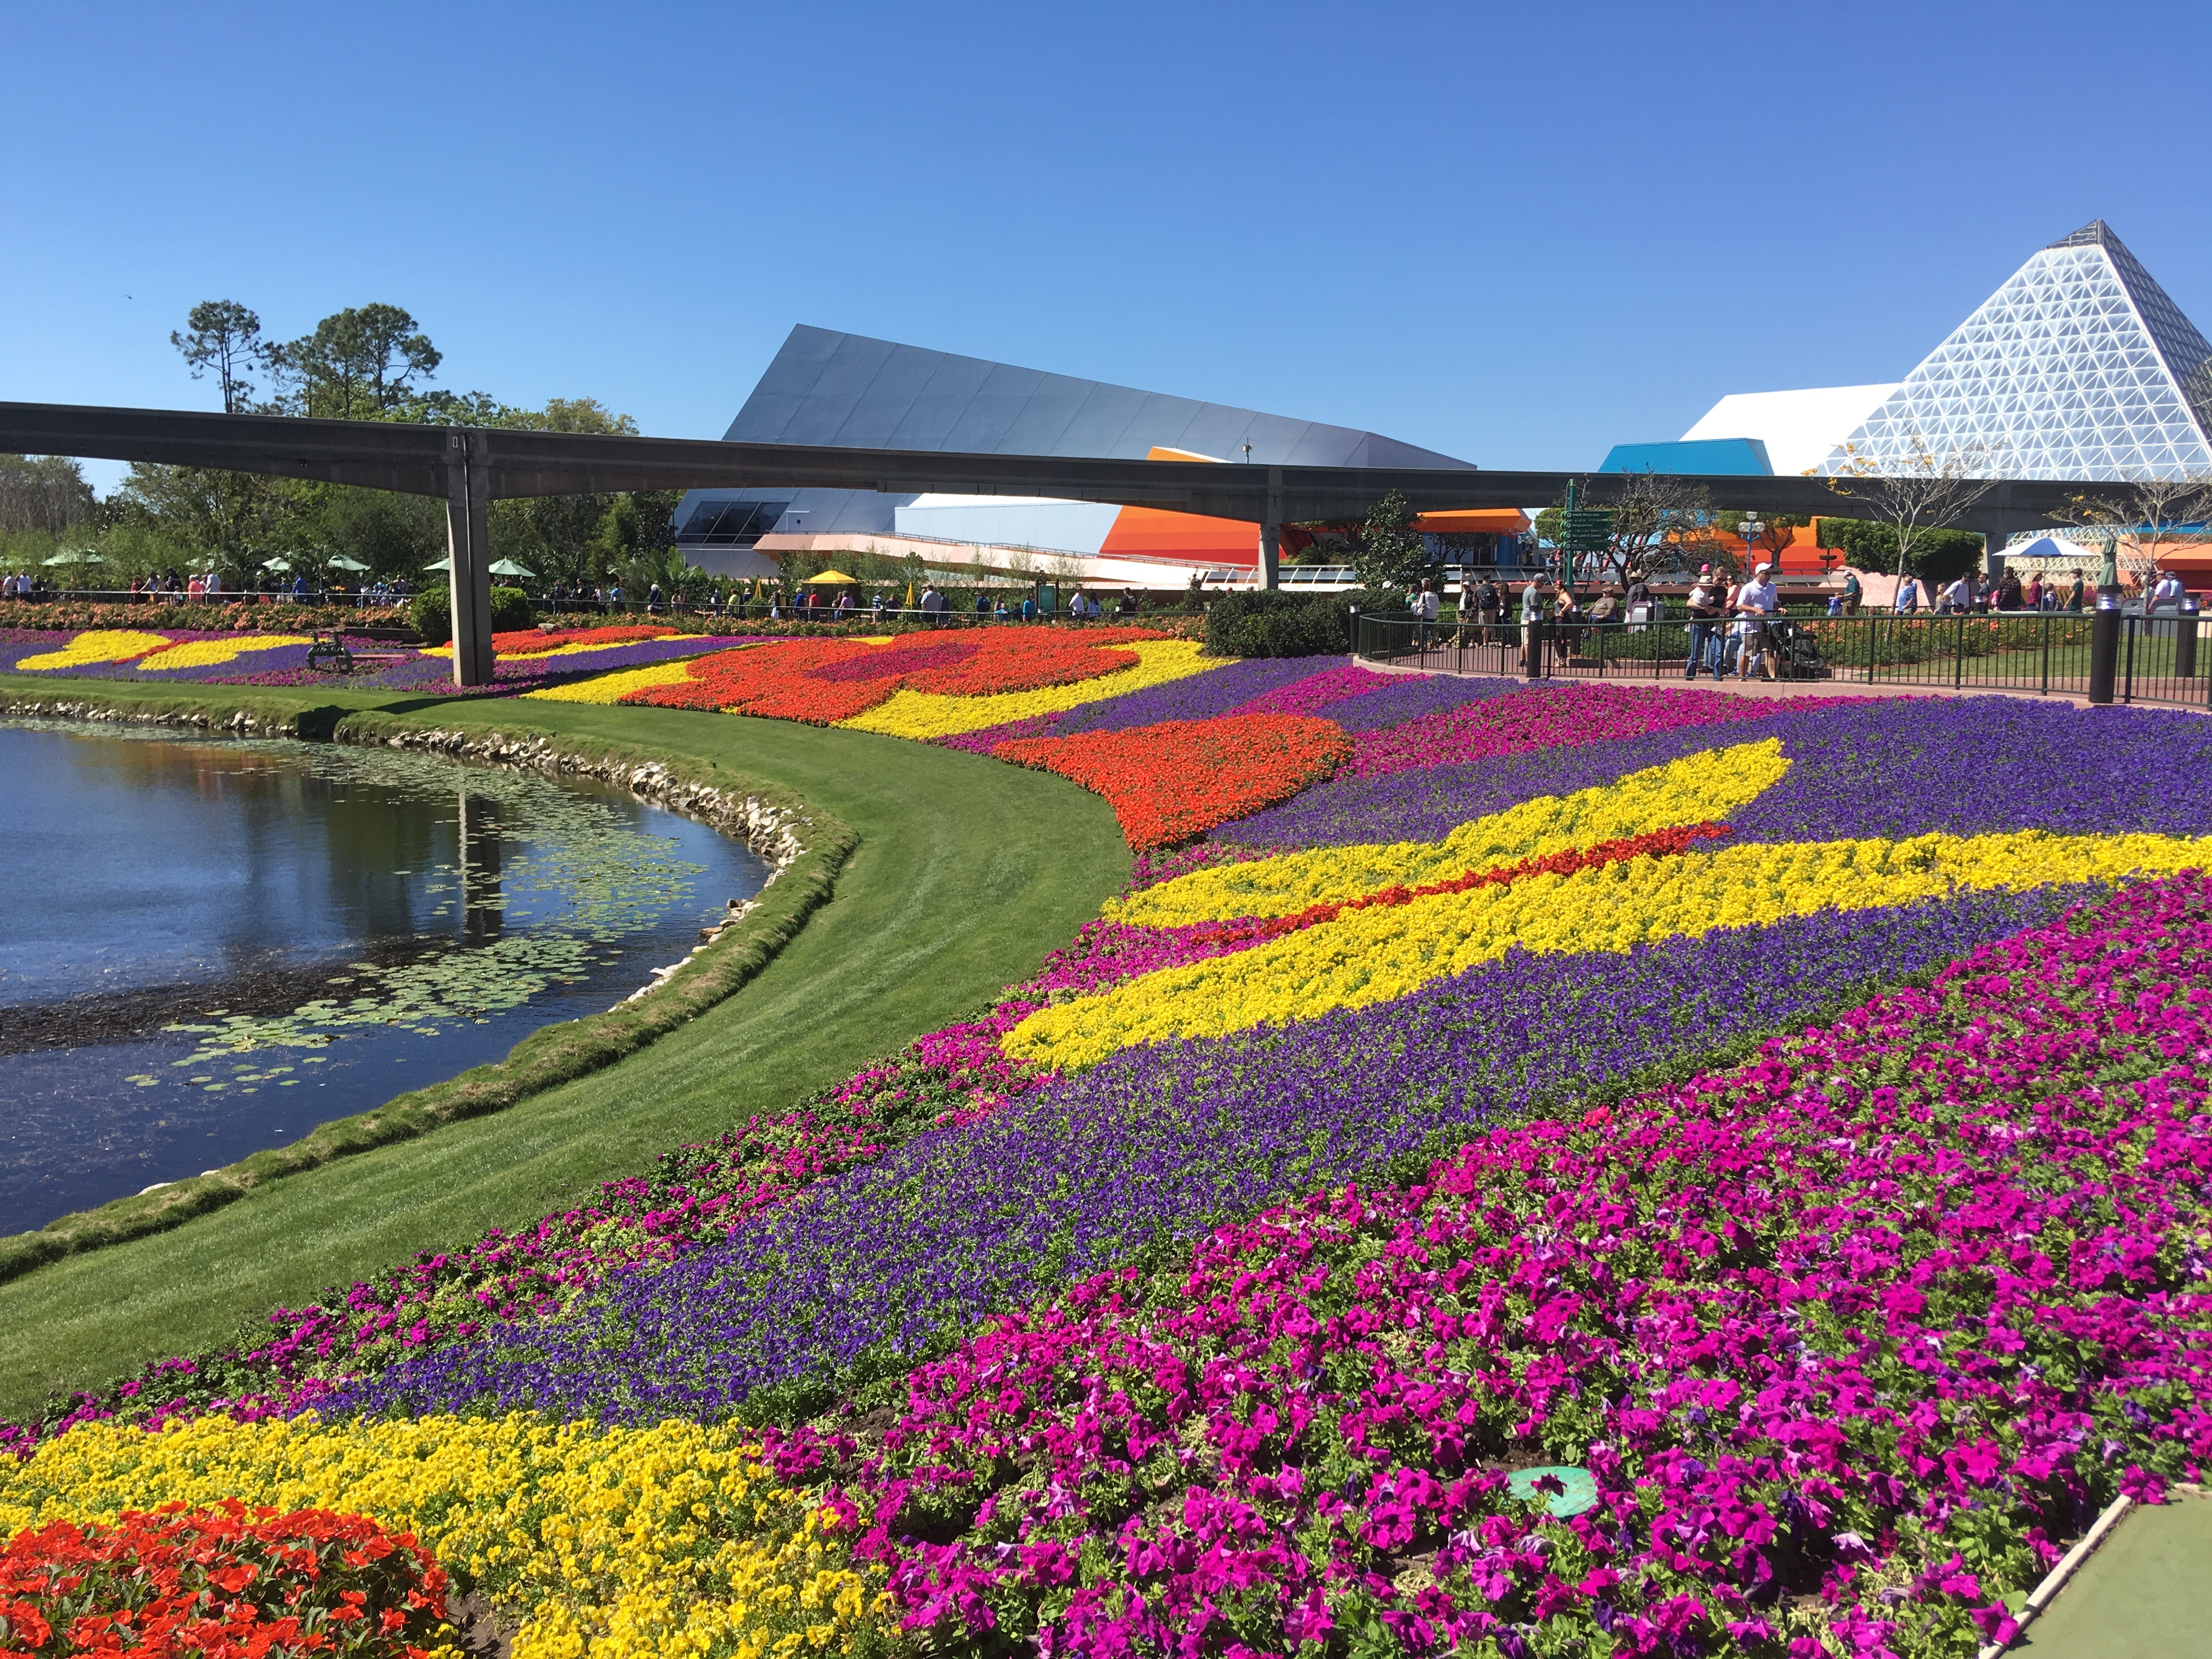 a look at new offerings and old favorites coming to epcot's flower